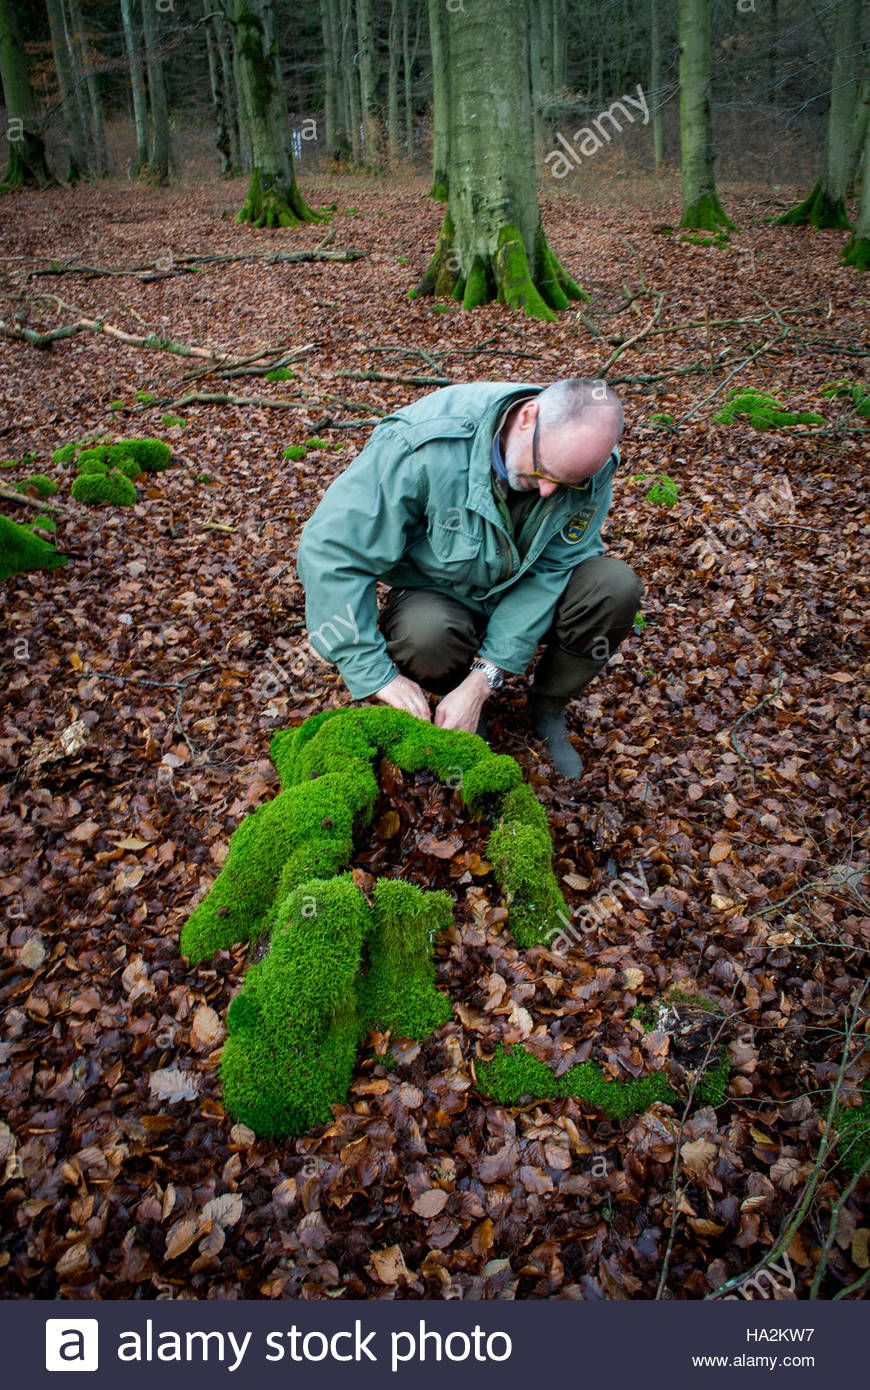 A tree stump at Peter Wohlleben's feet being kept alive by the surrounding community of Beech trees. Hümmel, - Stock Image